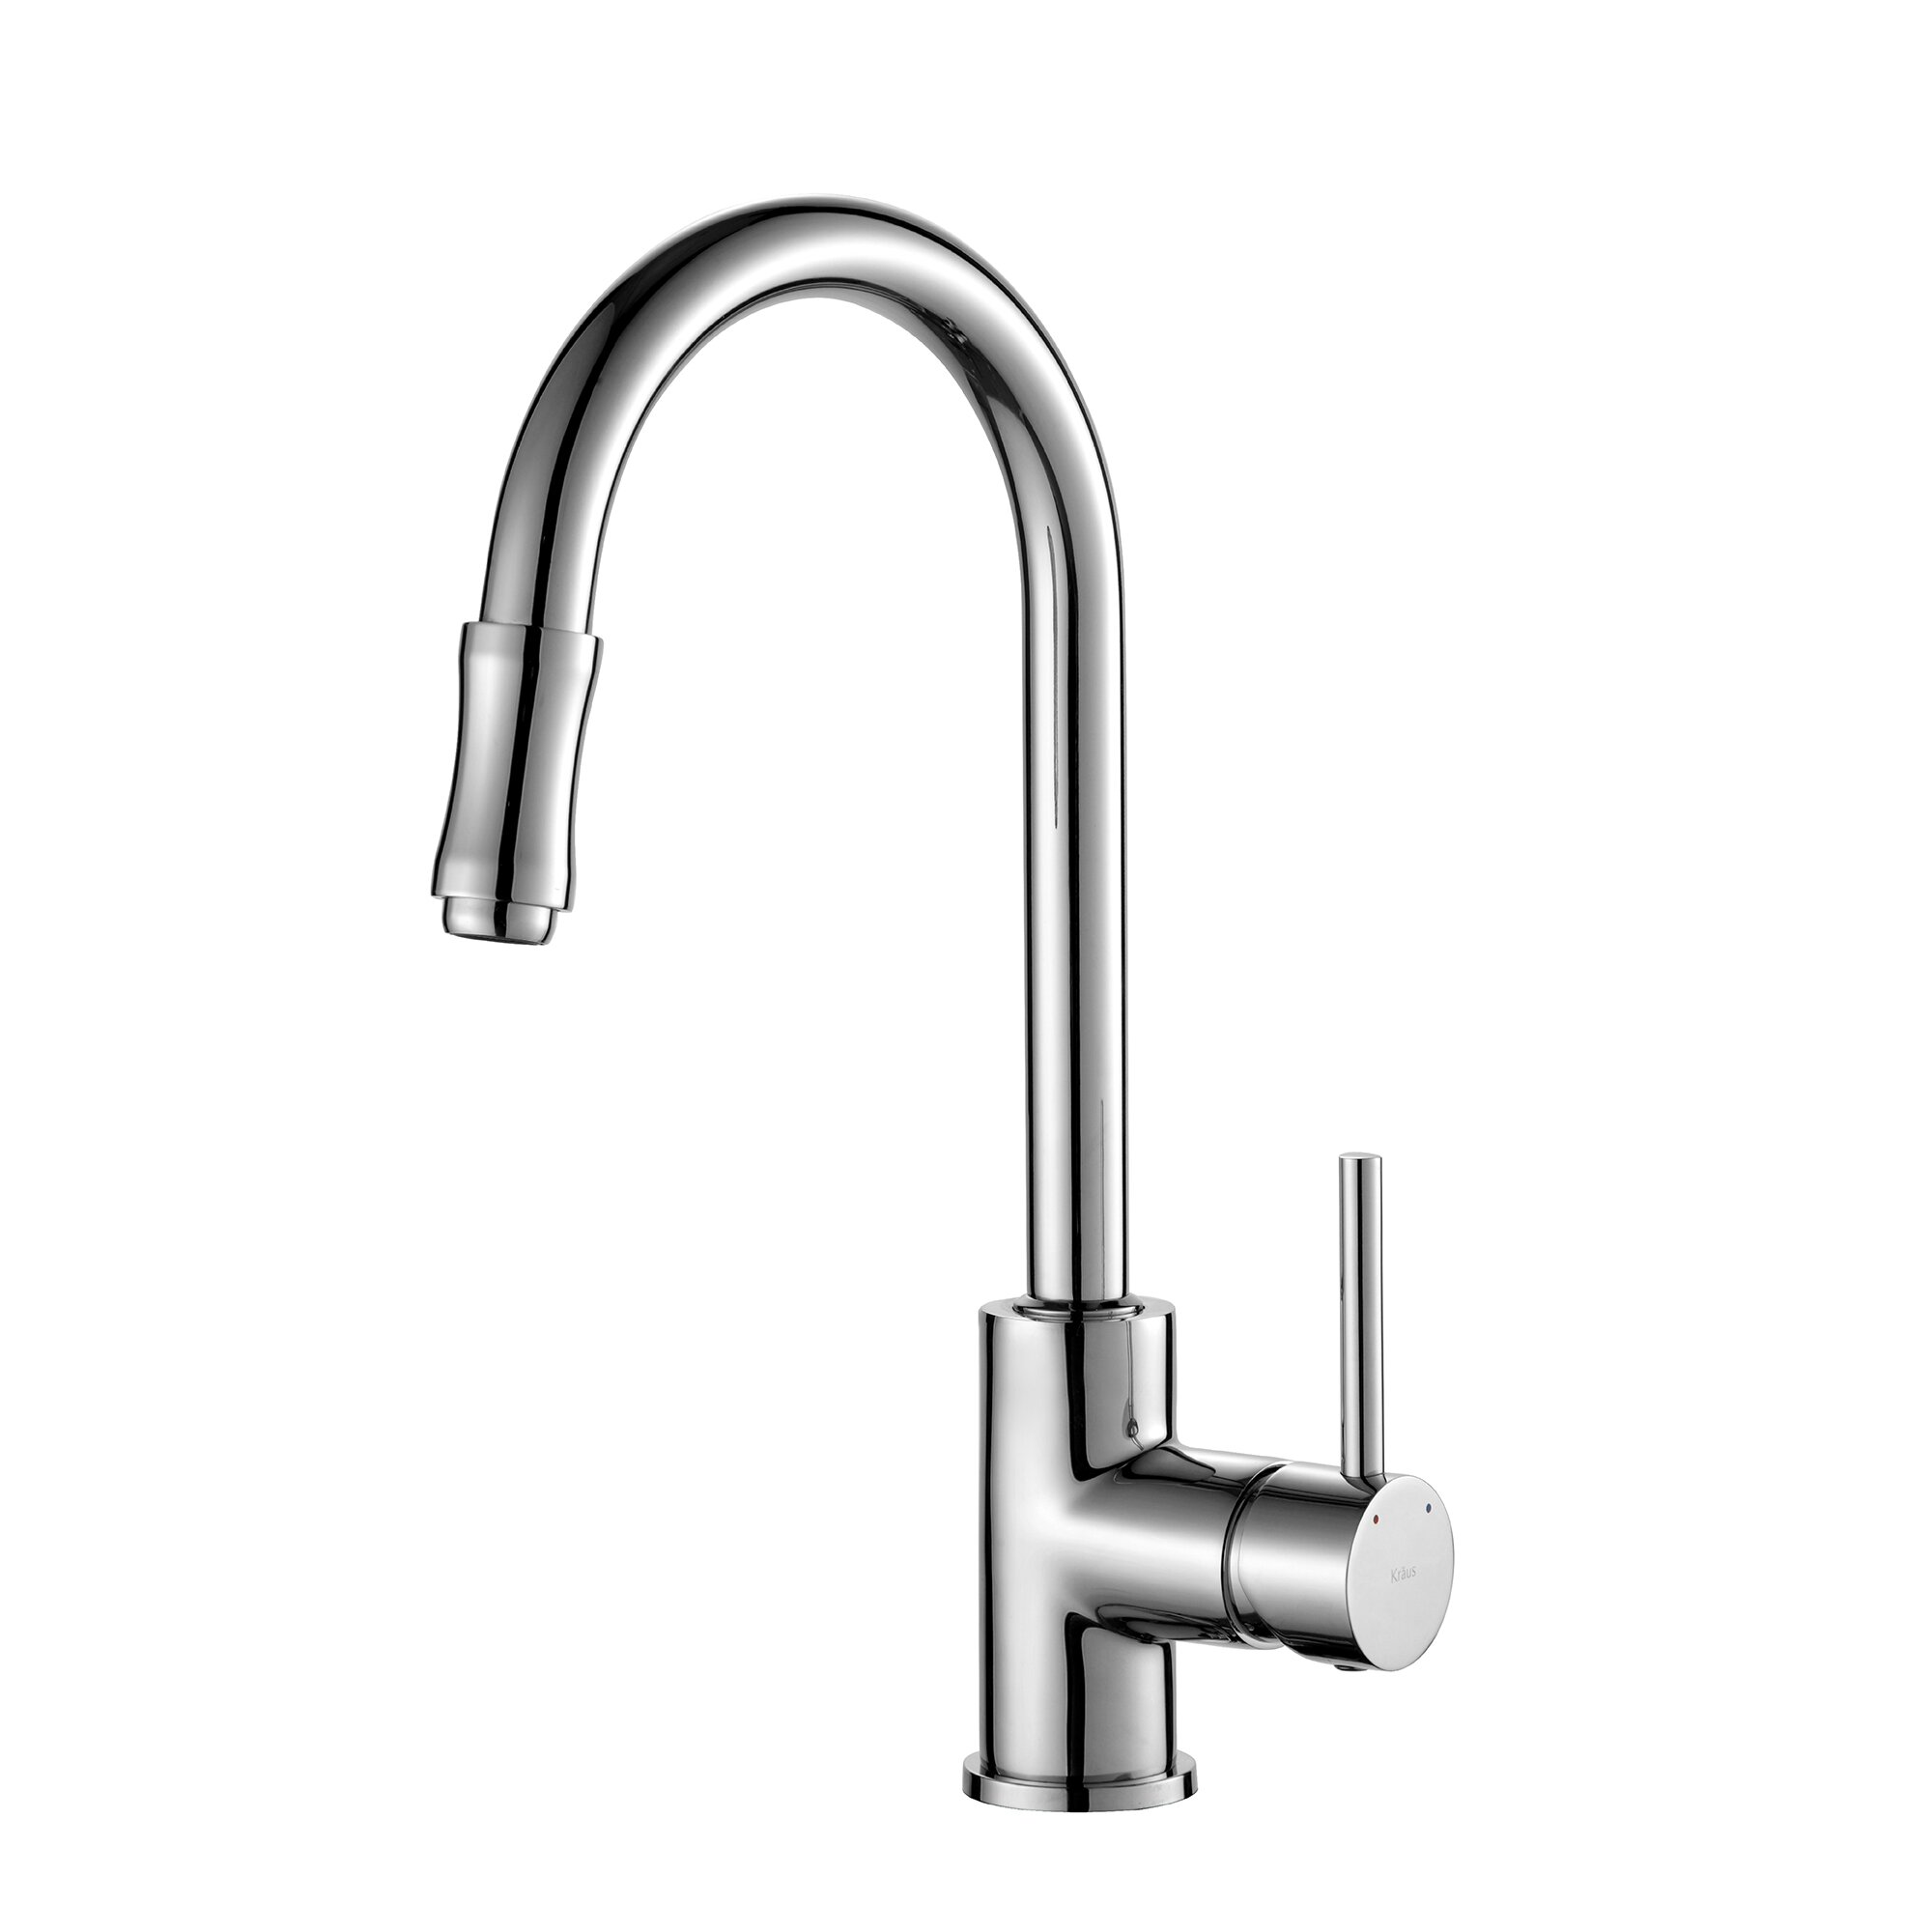 Kraus Premium Faucet Single Handle Pull Down Kitchen Faucet with Dual ...